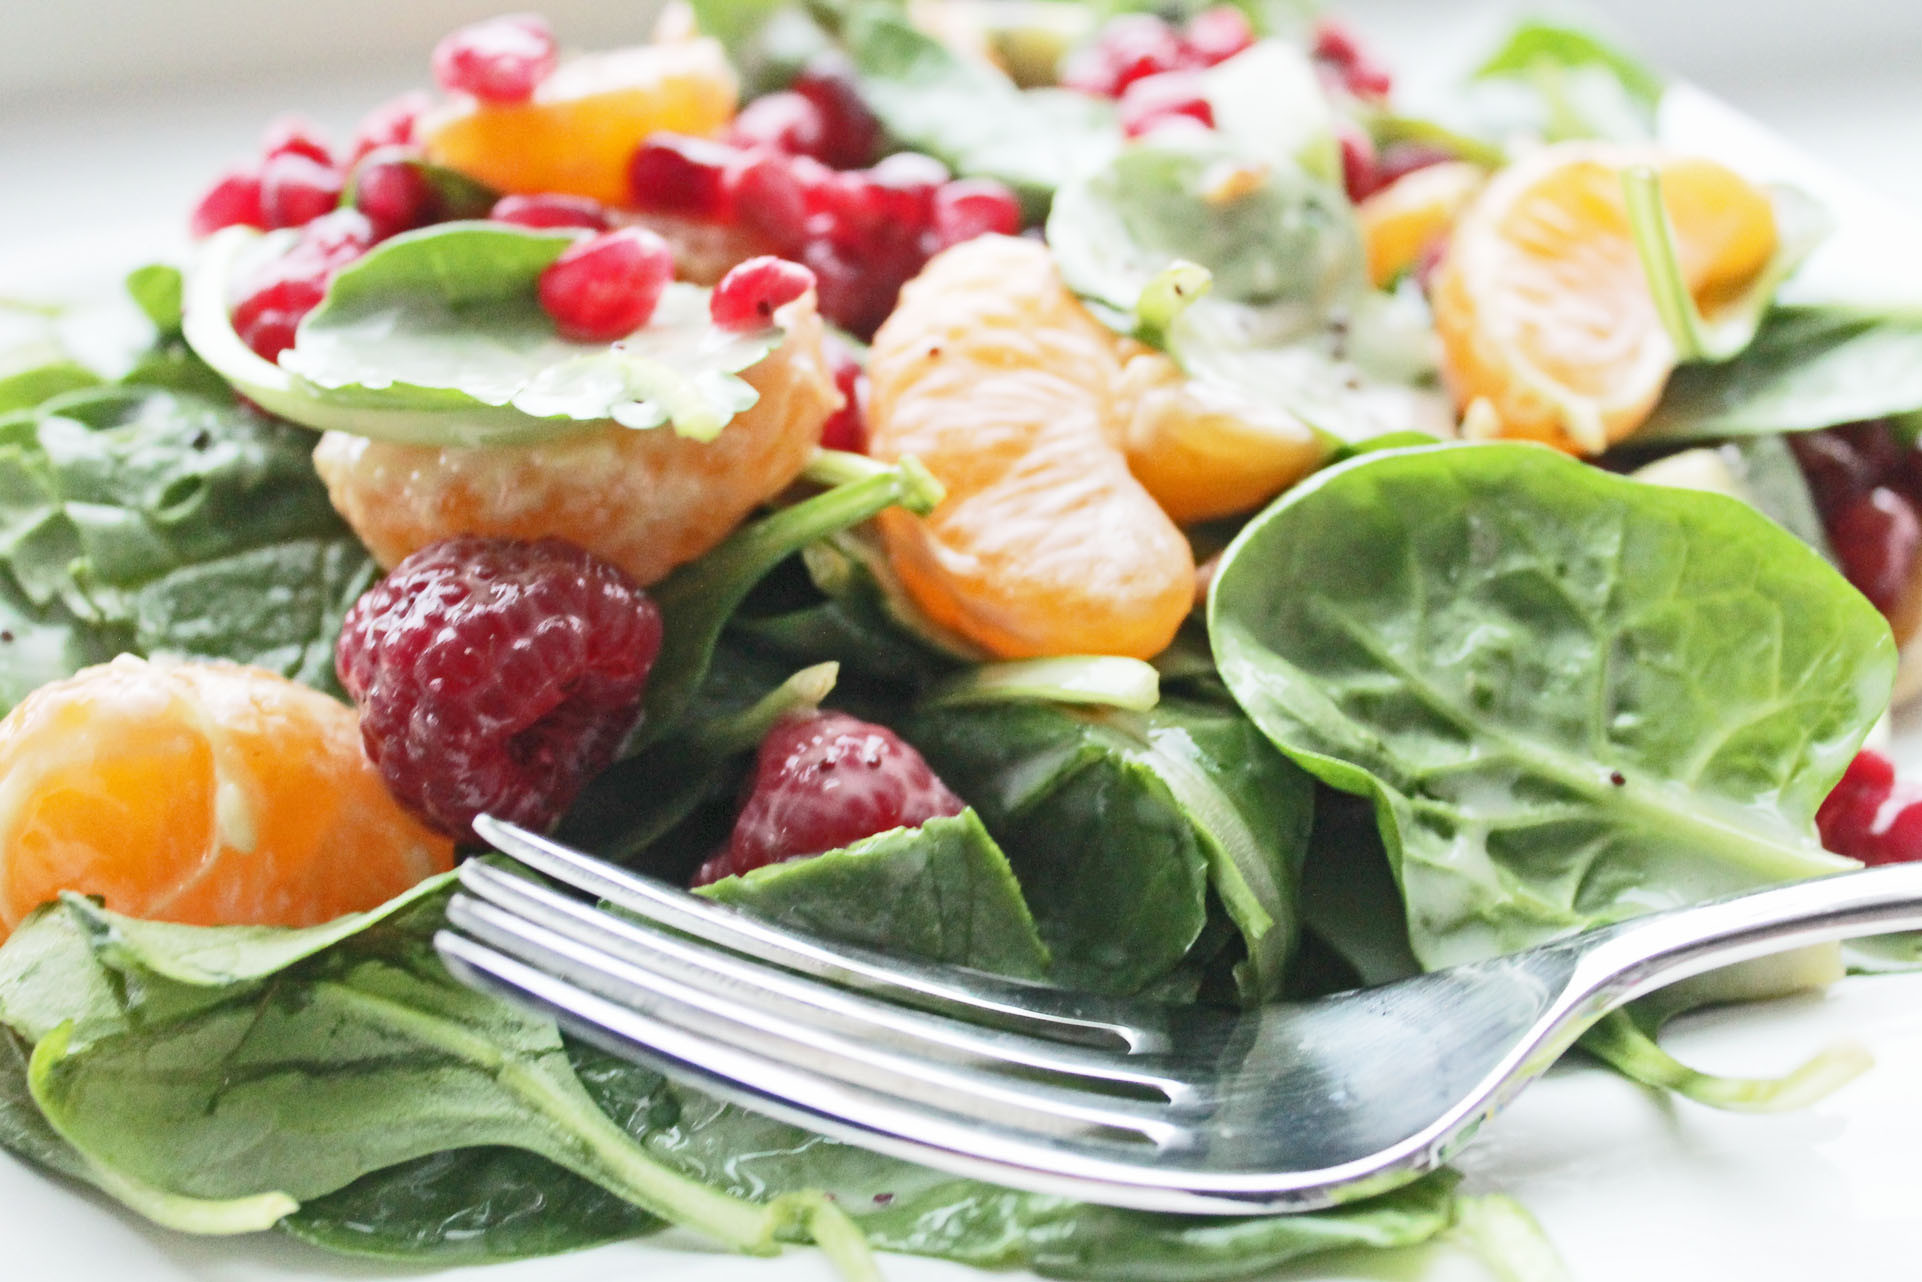 Healthy Clean Eating Recipes  Healthy Salad Recipe with Fruits and Spinach